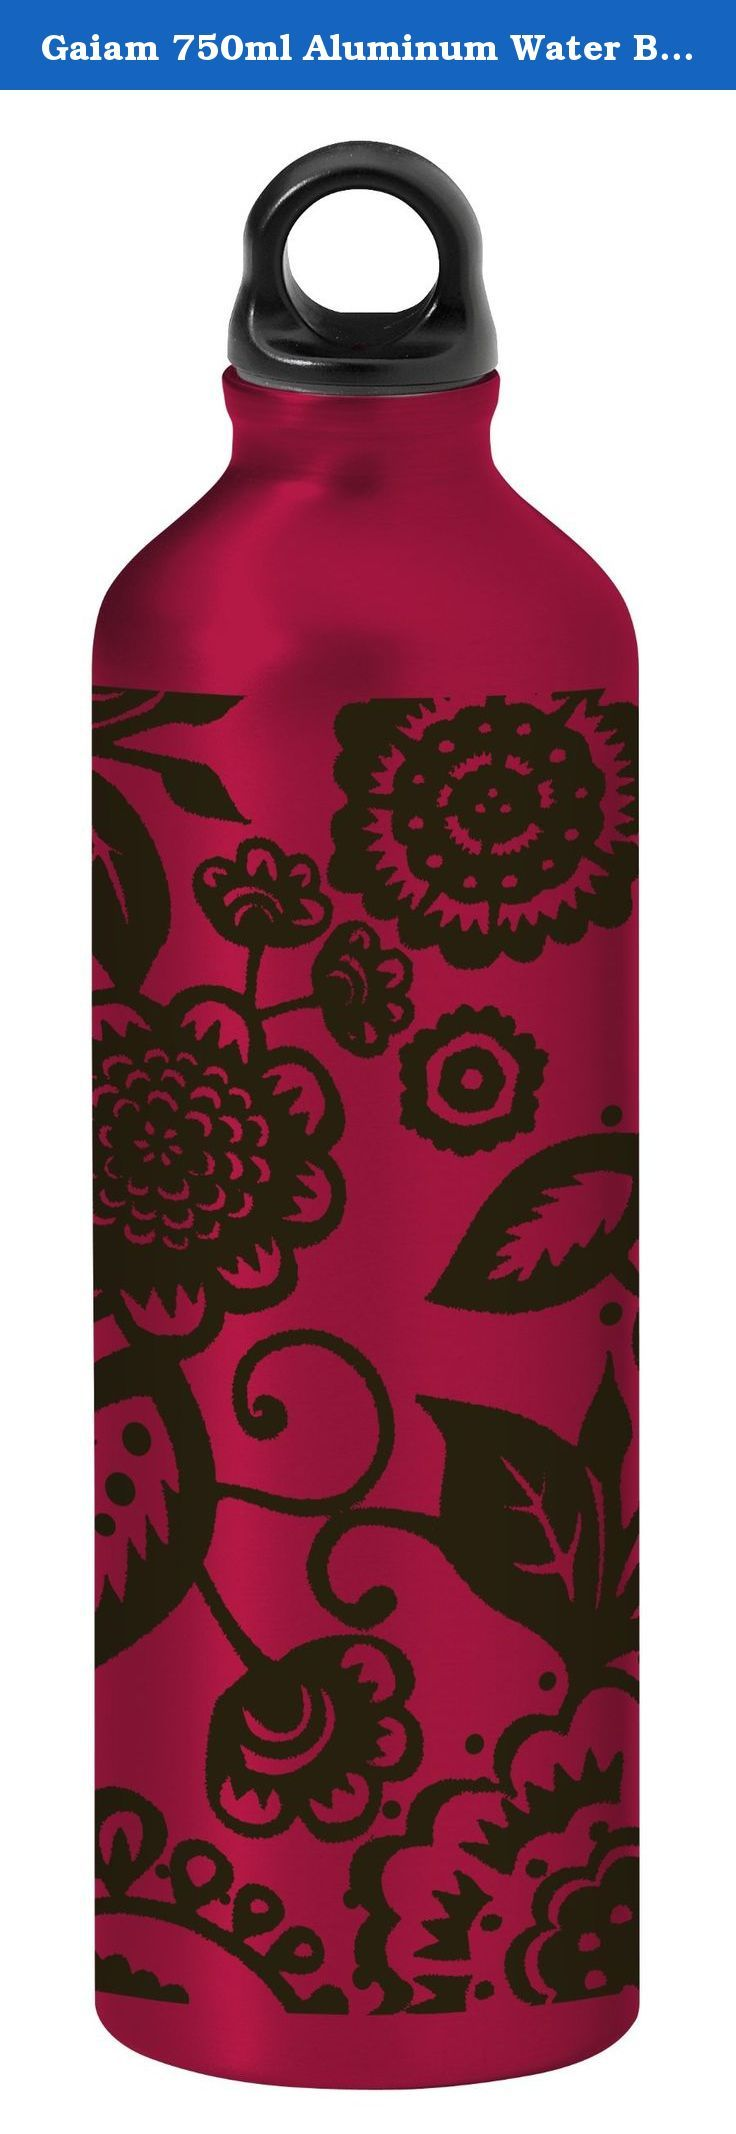 Gaiam 750ml Aluminum Water Bottle (Black Dahlia, Poly Loop Cap). An alternative to plastic water bottles, the Gaiam aluminum water bottle is a perfect way to enjoy your favorite beverage. Available in several fashion prints, chose the bottle that reflects your personality while reducing the amount of plastic that ends up in our landfills.